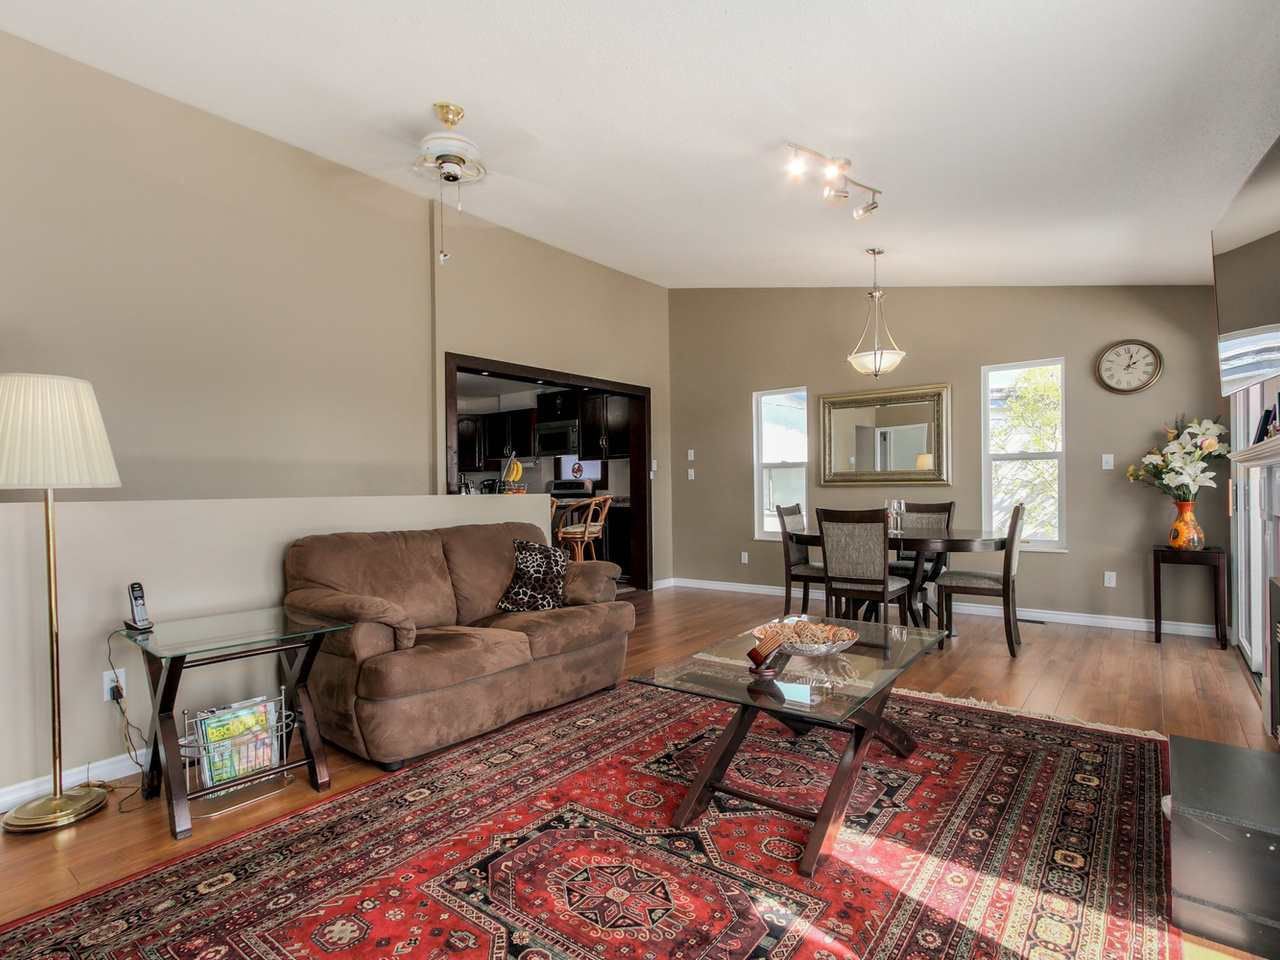 Photo 5: Photos: 449 E 5TH Street in North Vancouver: Lower Lonsdale House for sale : MLS®# R2056647